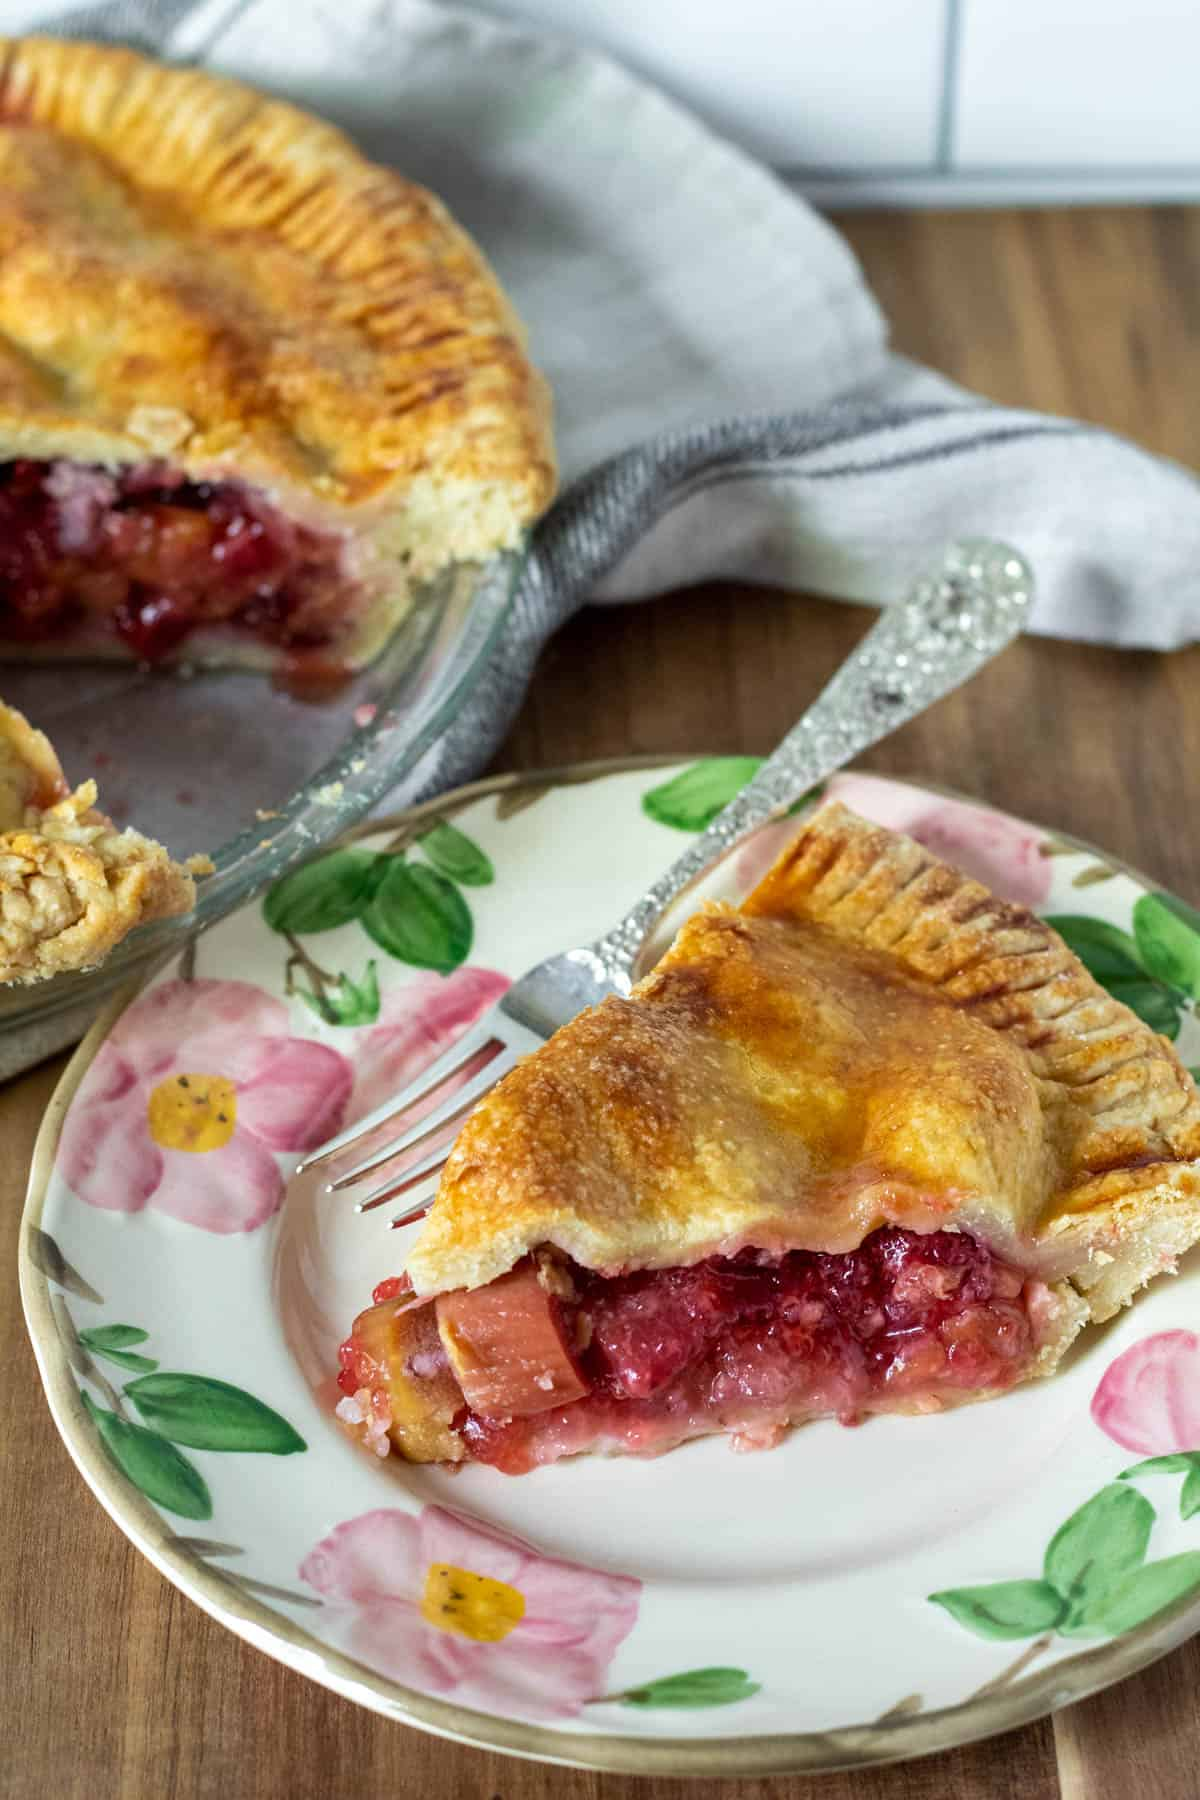 Pie on serving plate with whole strawberry rhubarb pie in background.